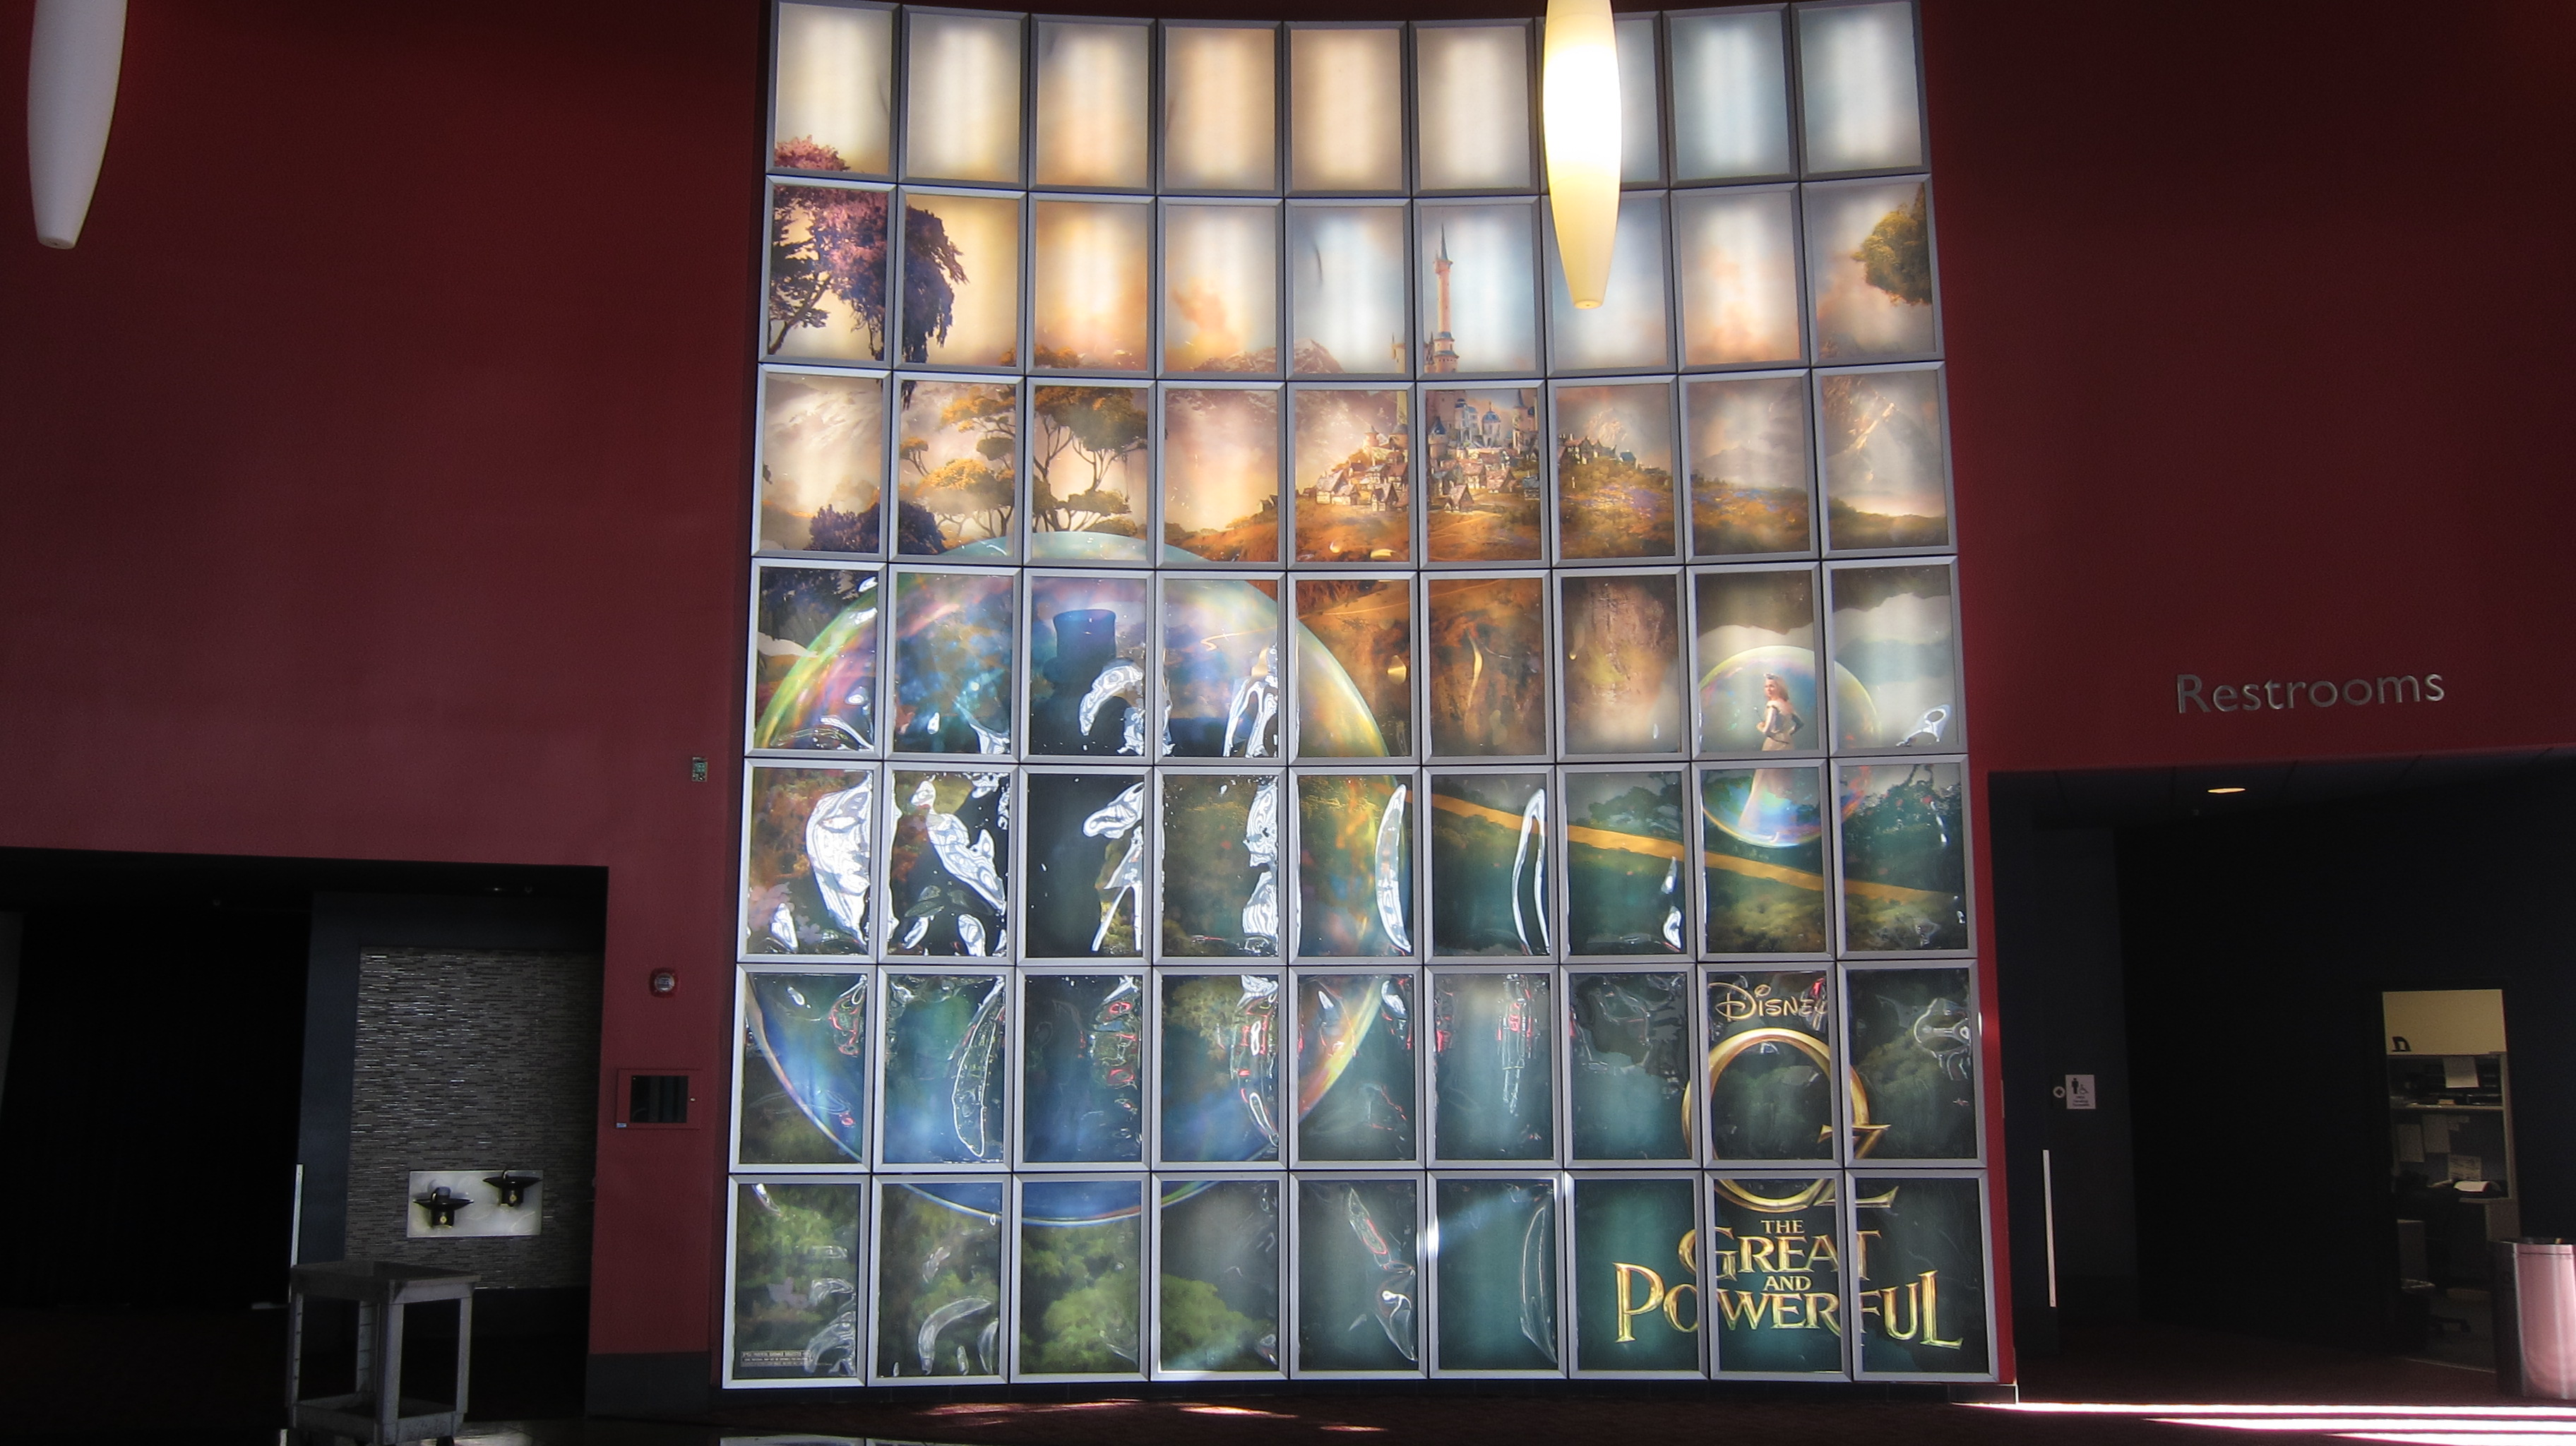 Giant backlit wall for Disney's OZ THE GREAT AND POWERFUL at the ArcLight Beach Cities.